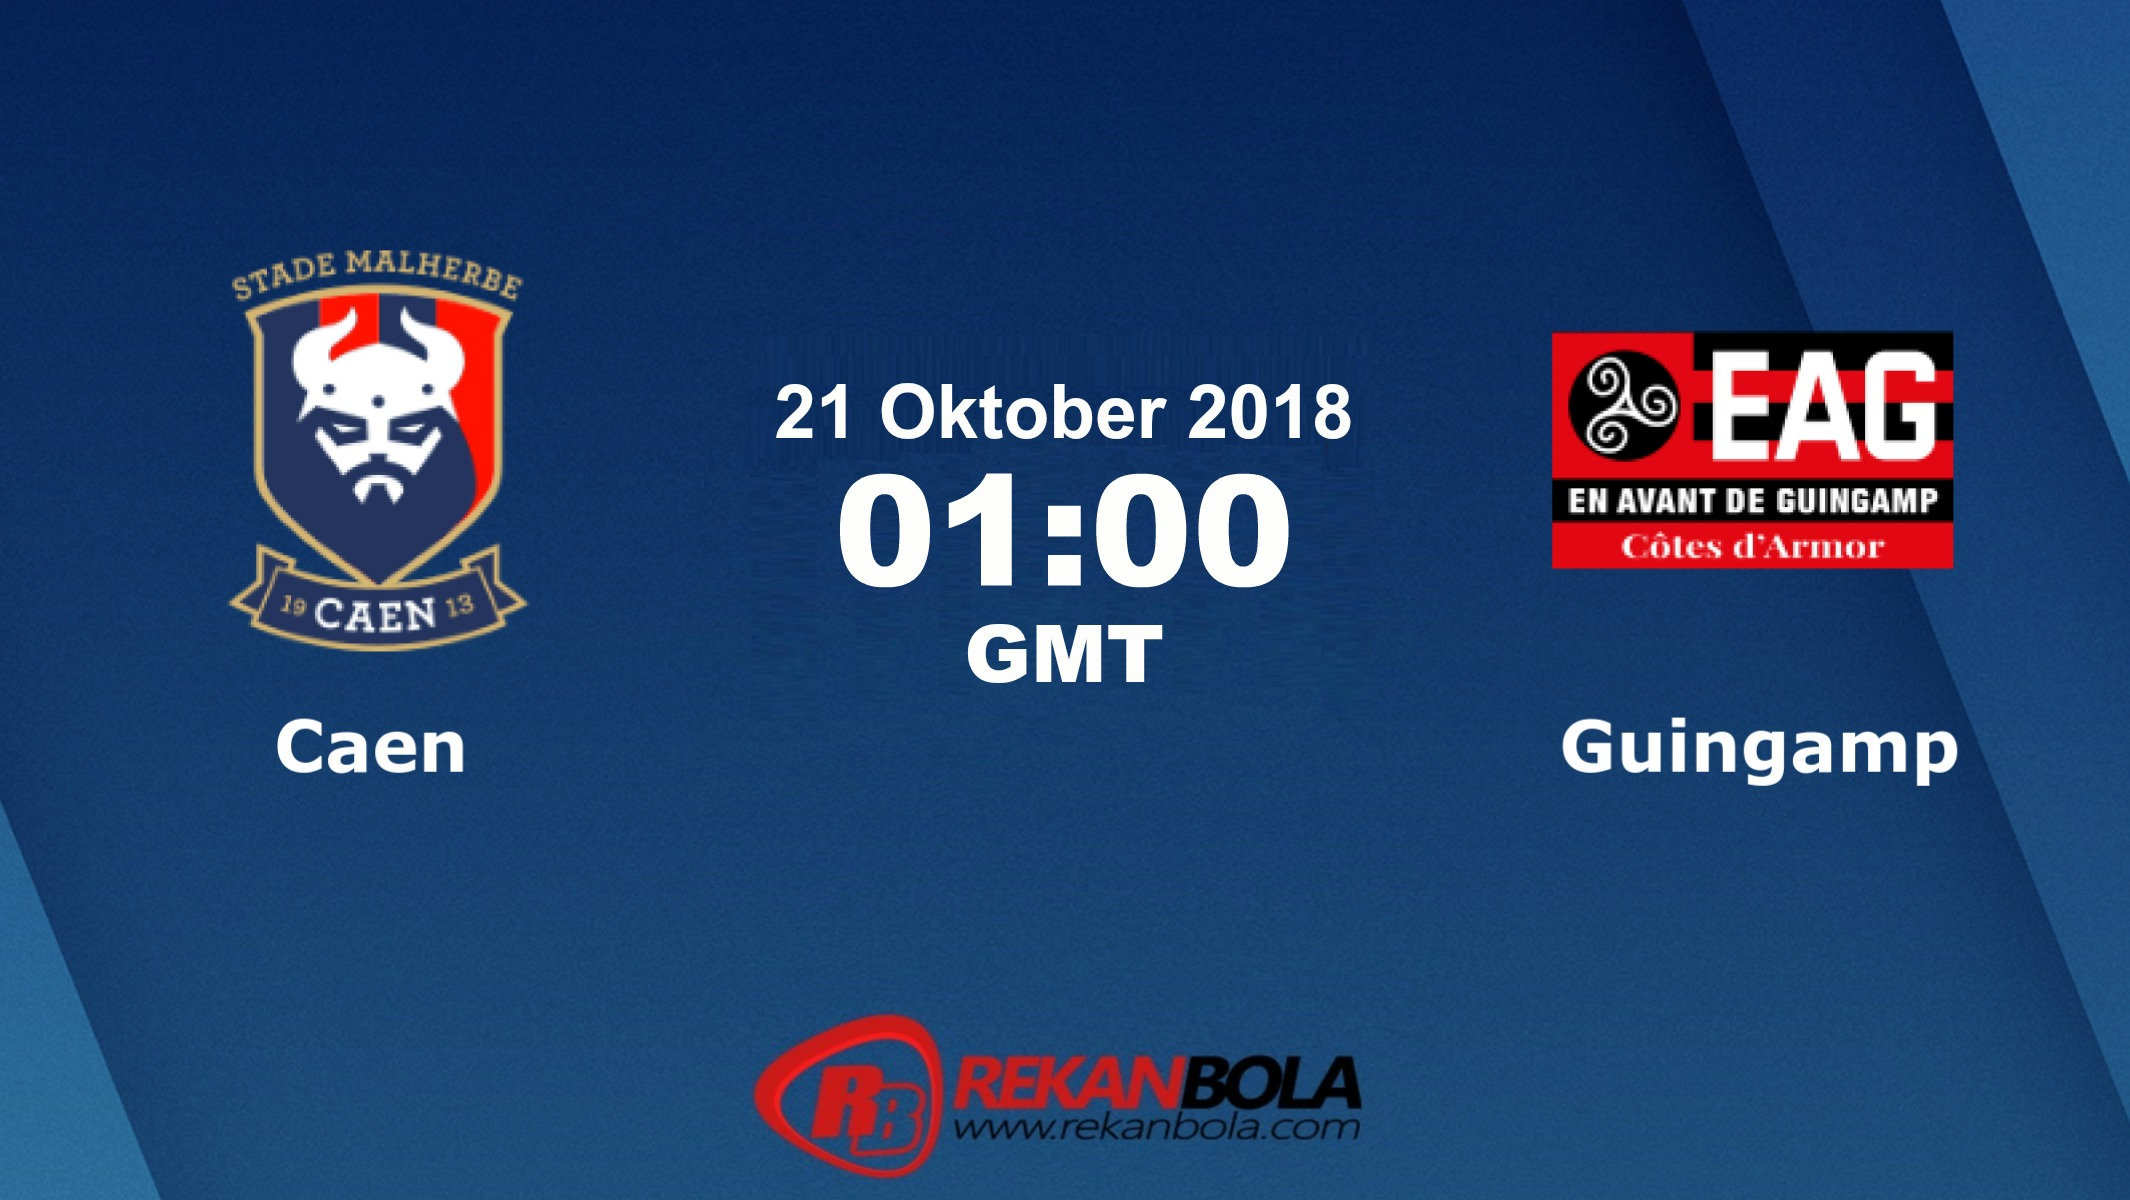 Nonton Siaran Live Streaming Caen Vs Guingamp 21 Oktober 2018